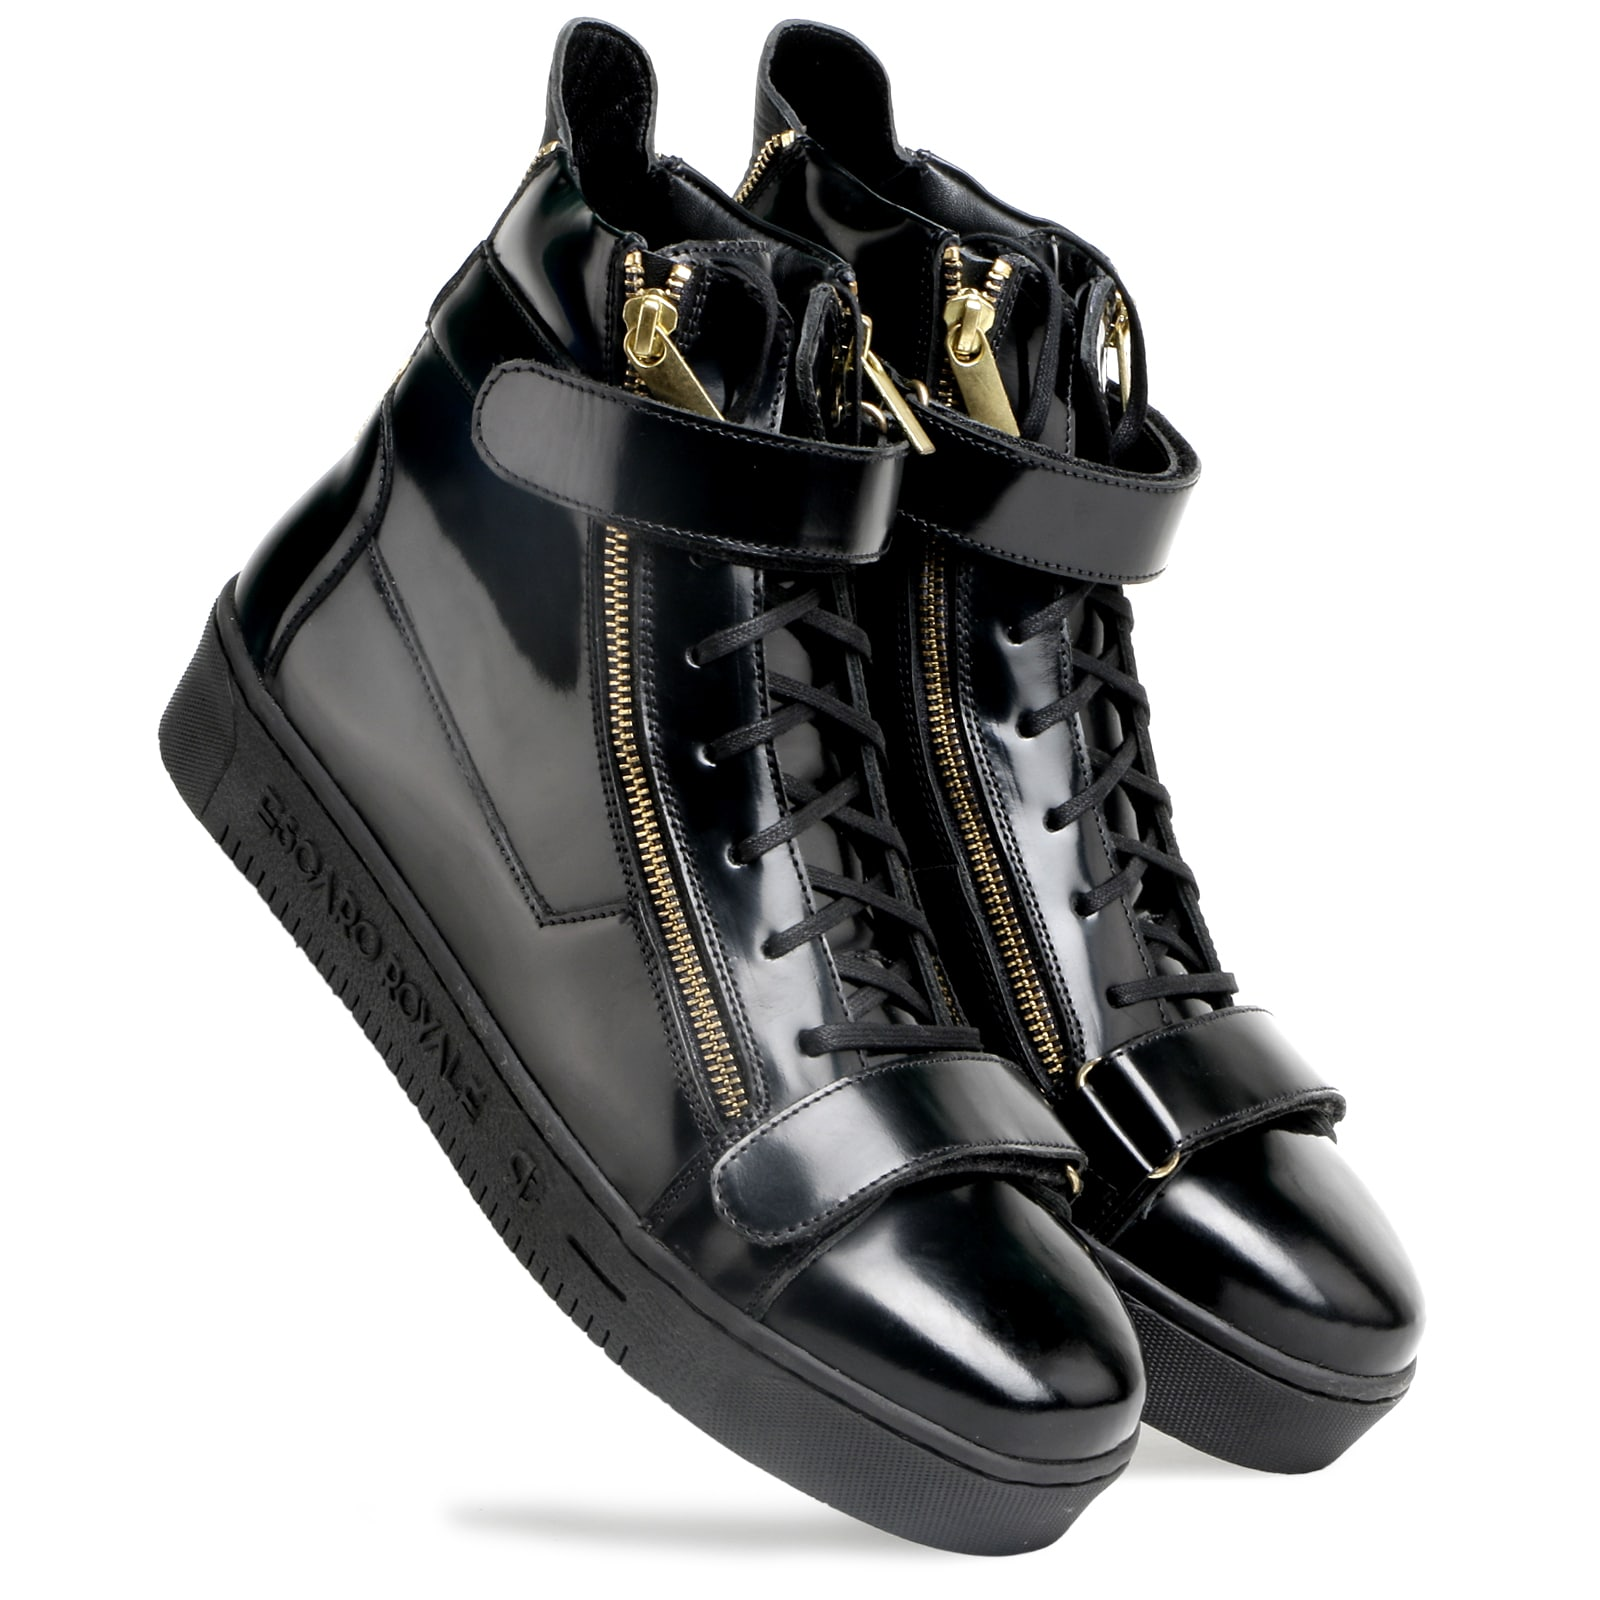 The trendy Phenom leather sneakers by Escaro Royale